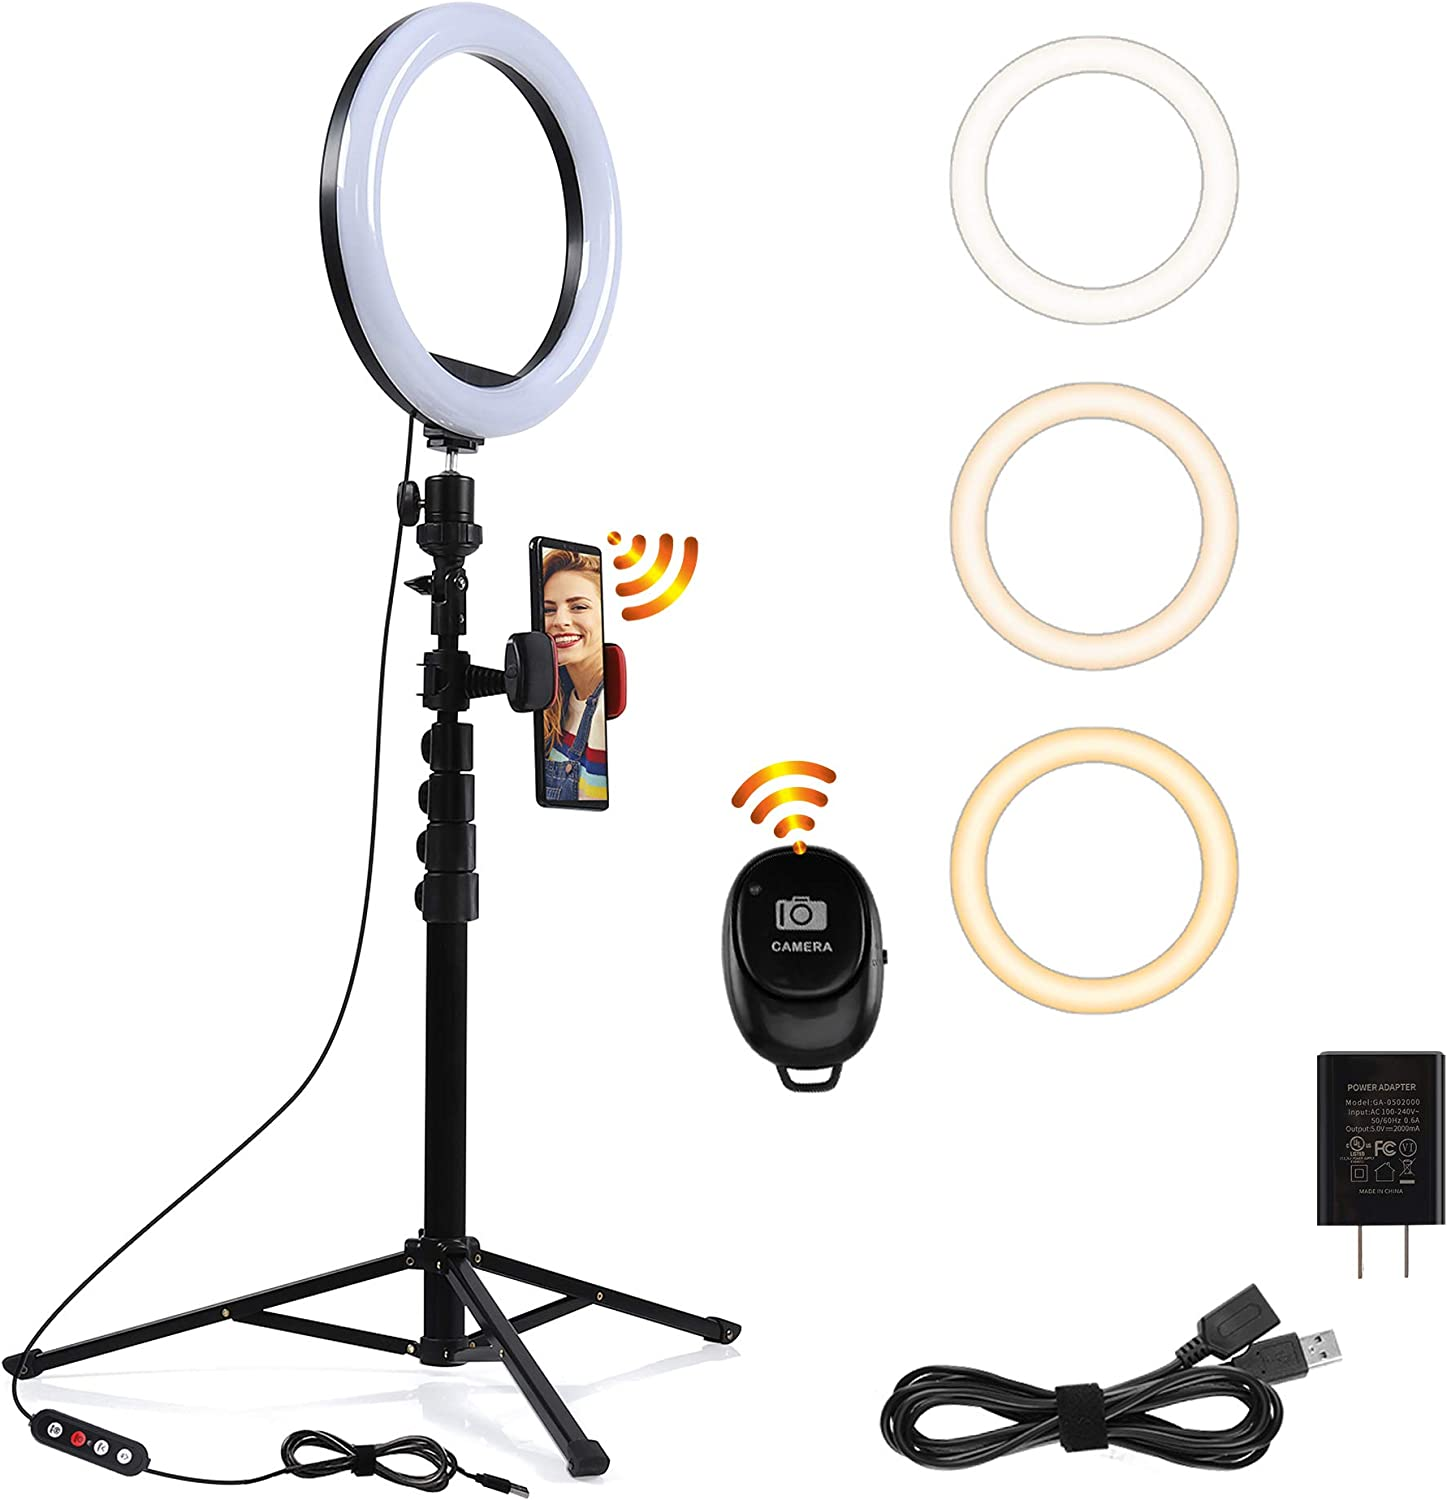 """PrawnHz 10"""" Ring Light Stand with Phone Holders – Arch Shape Boost Brightness 40% – Adjustable Lighting Modes – Remote Control – Home Selfie Video Recording – TikTok and YouTube"""